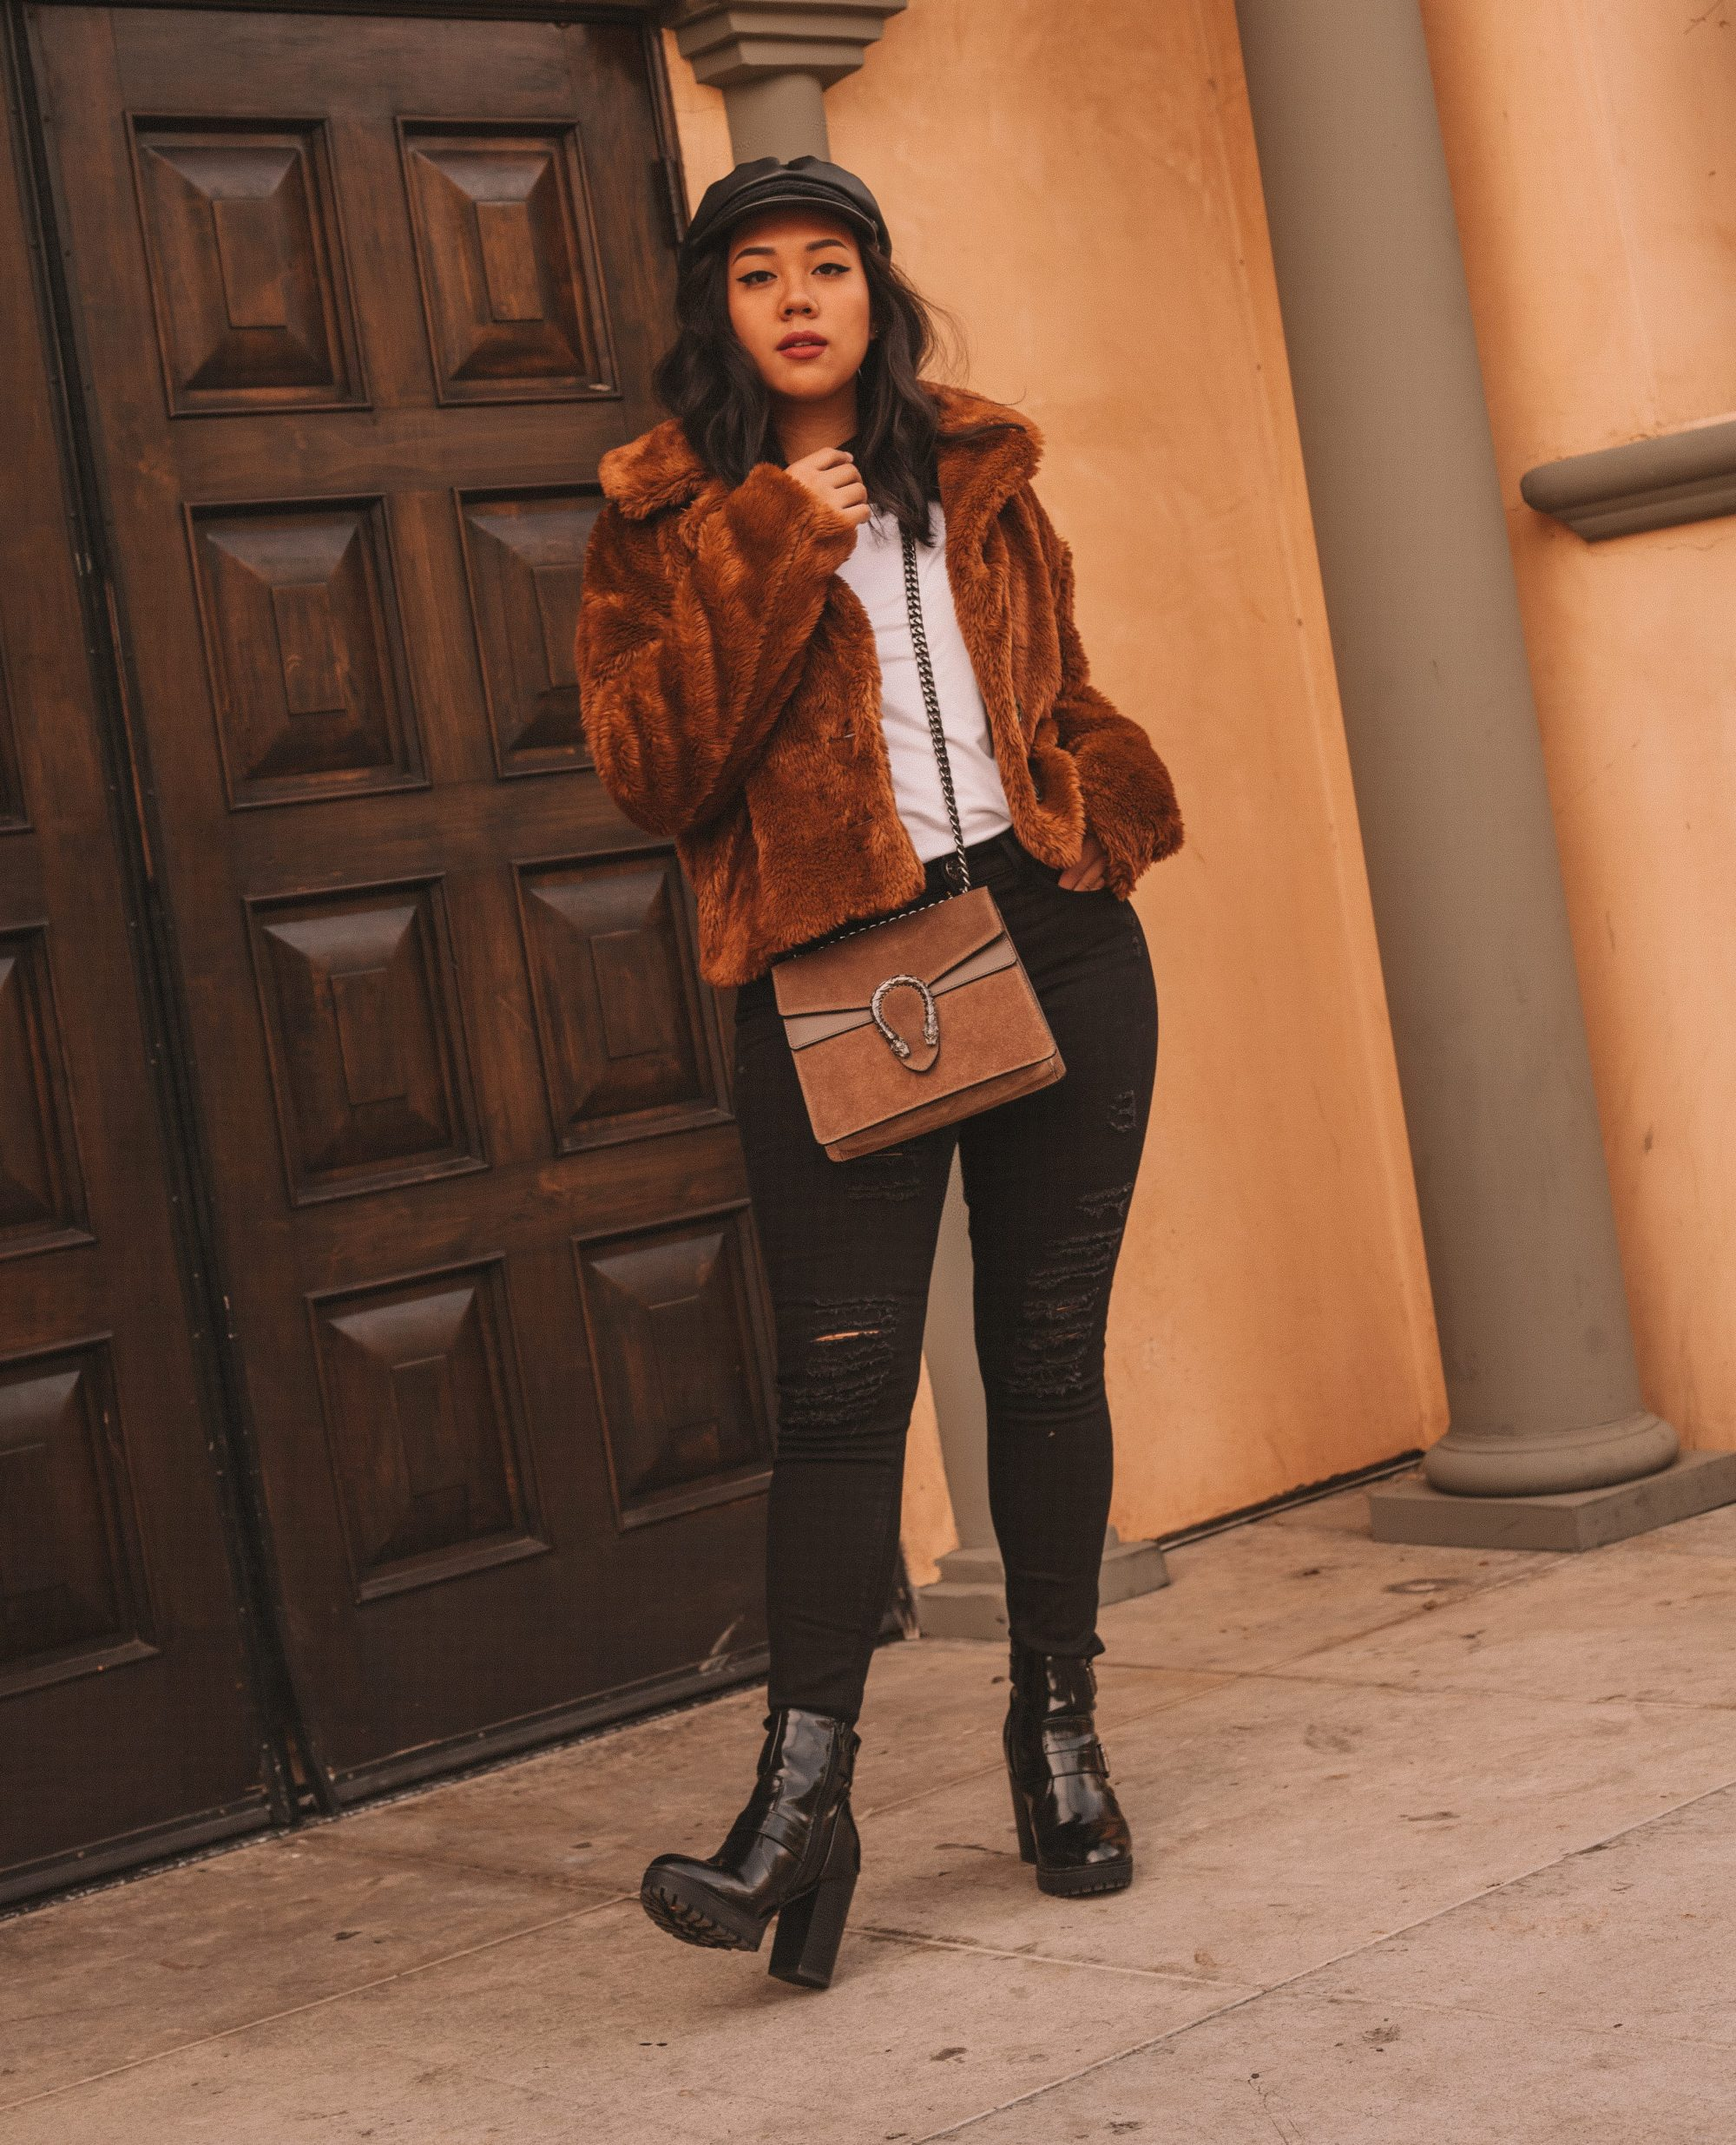 755adafe3 Free People Mena Faux Fur Coat: $128 $96 | Brixton Fiddler Faux Leather  Cap: $44 | Gucci Dionysus Handbag Dupe: $119 | SODA Platform Chunky Boot:  $24.99